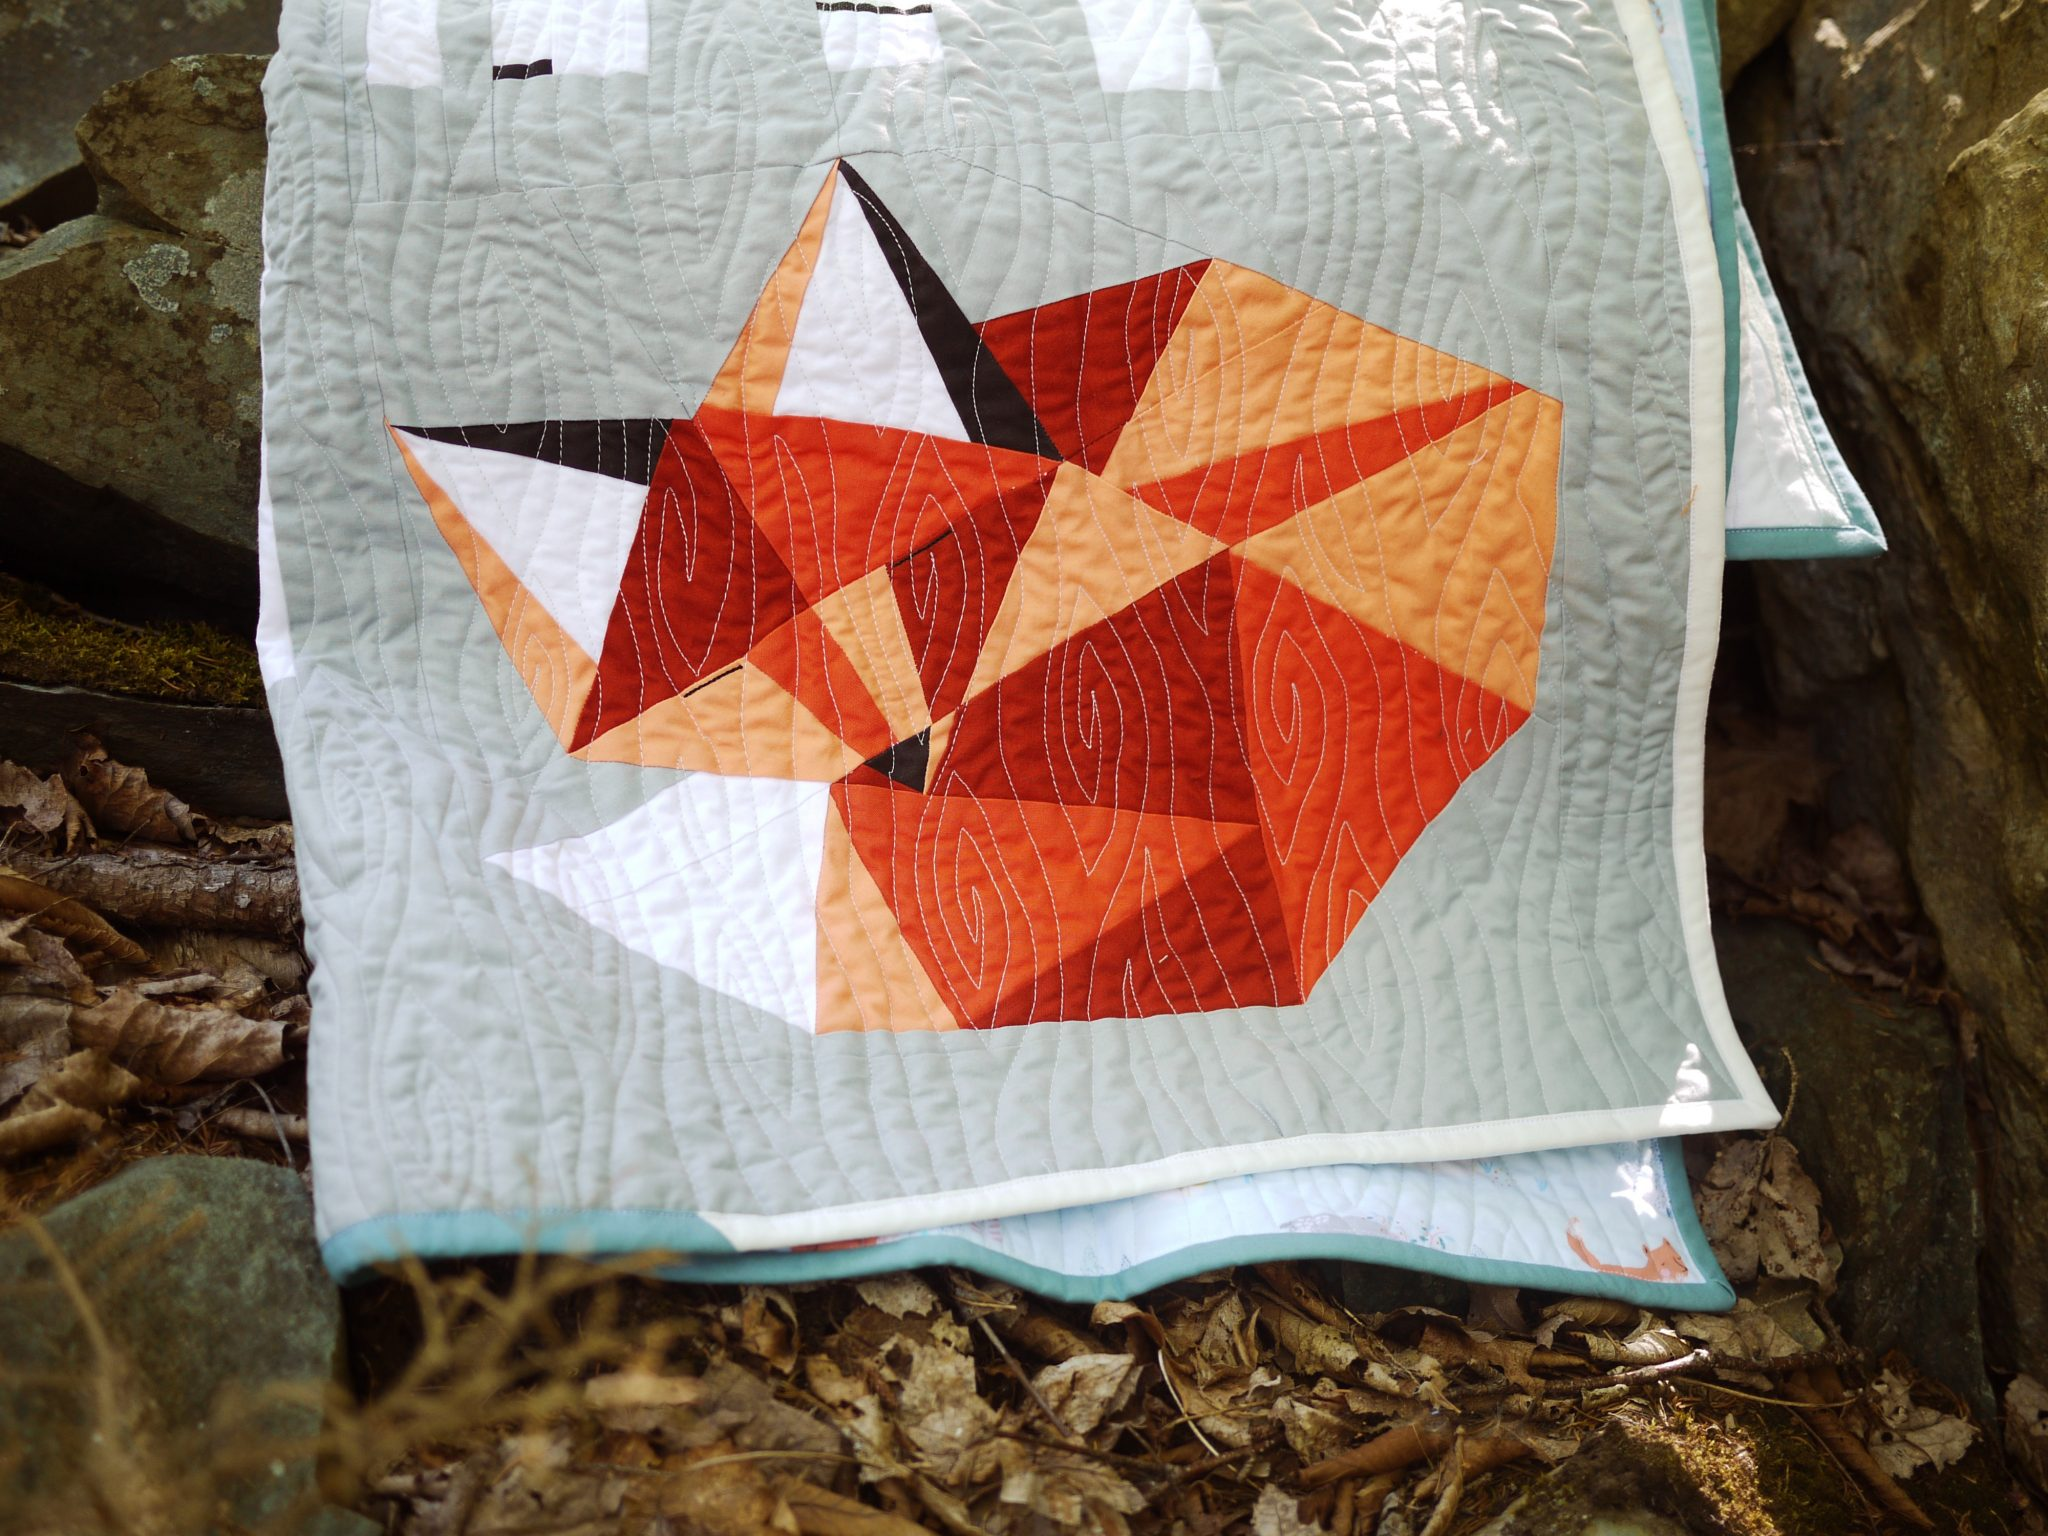 Sleepy Fox Quilt: Thoughts on the Client Relationship